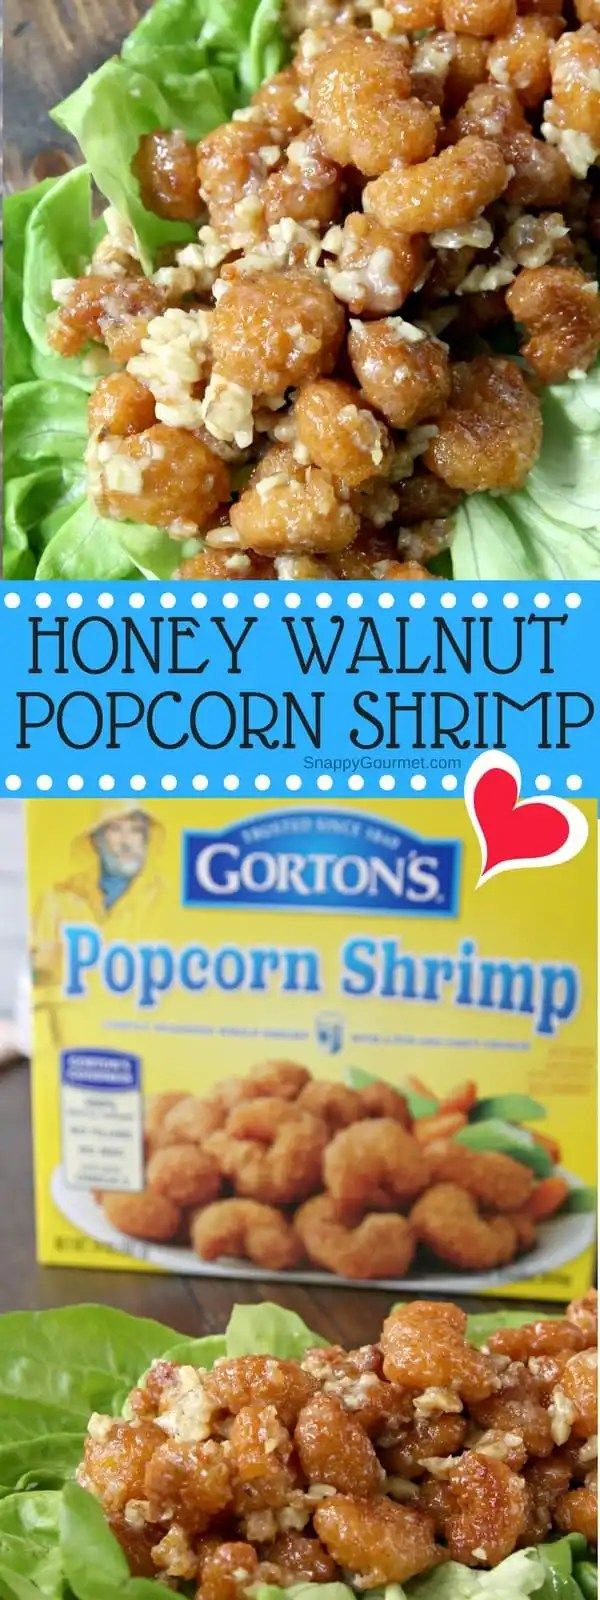 Honey Walnut Popcorn Shrimp - quick and easy honey walnut shrimp with a homemade honey walnut sauce and baked popcorn shrimp. SnappyGourmet.com